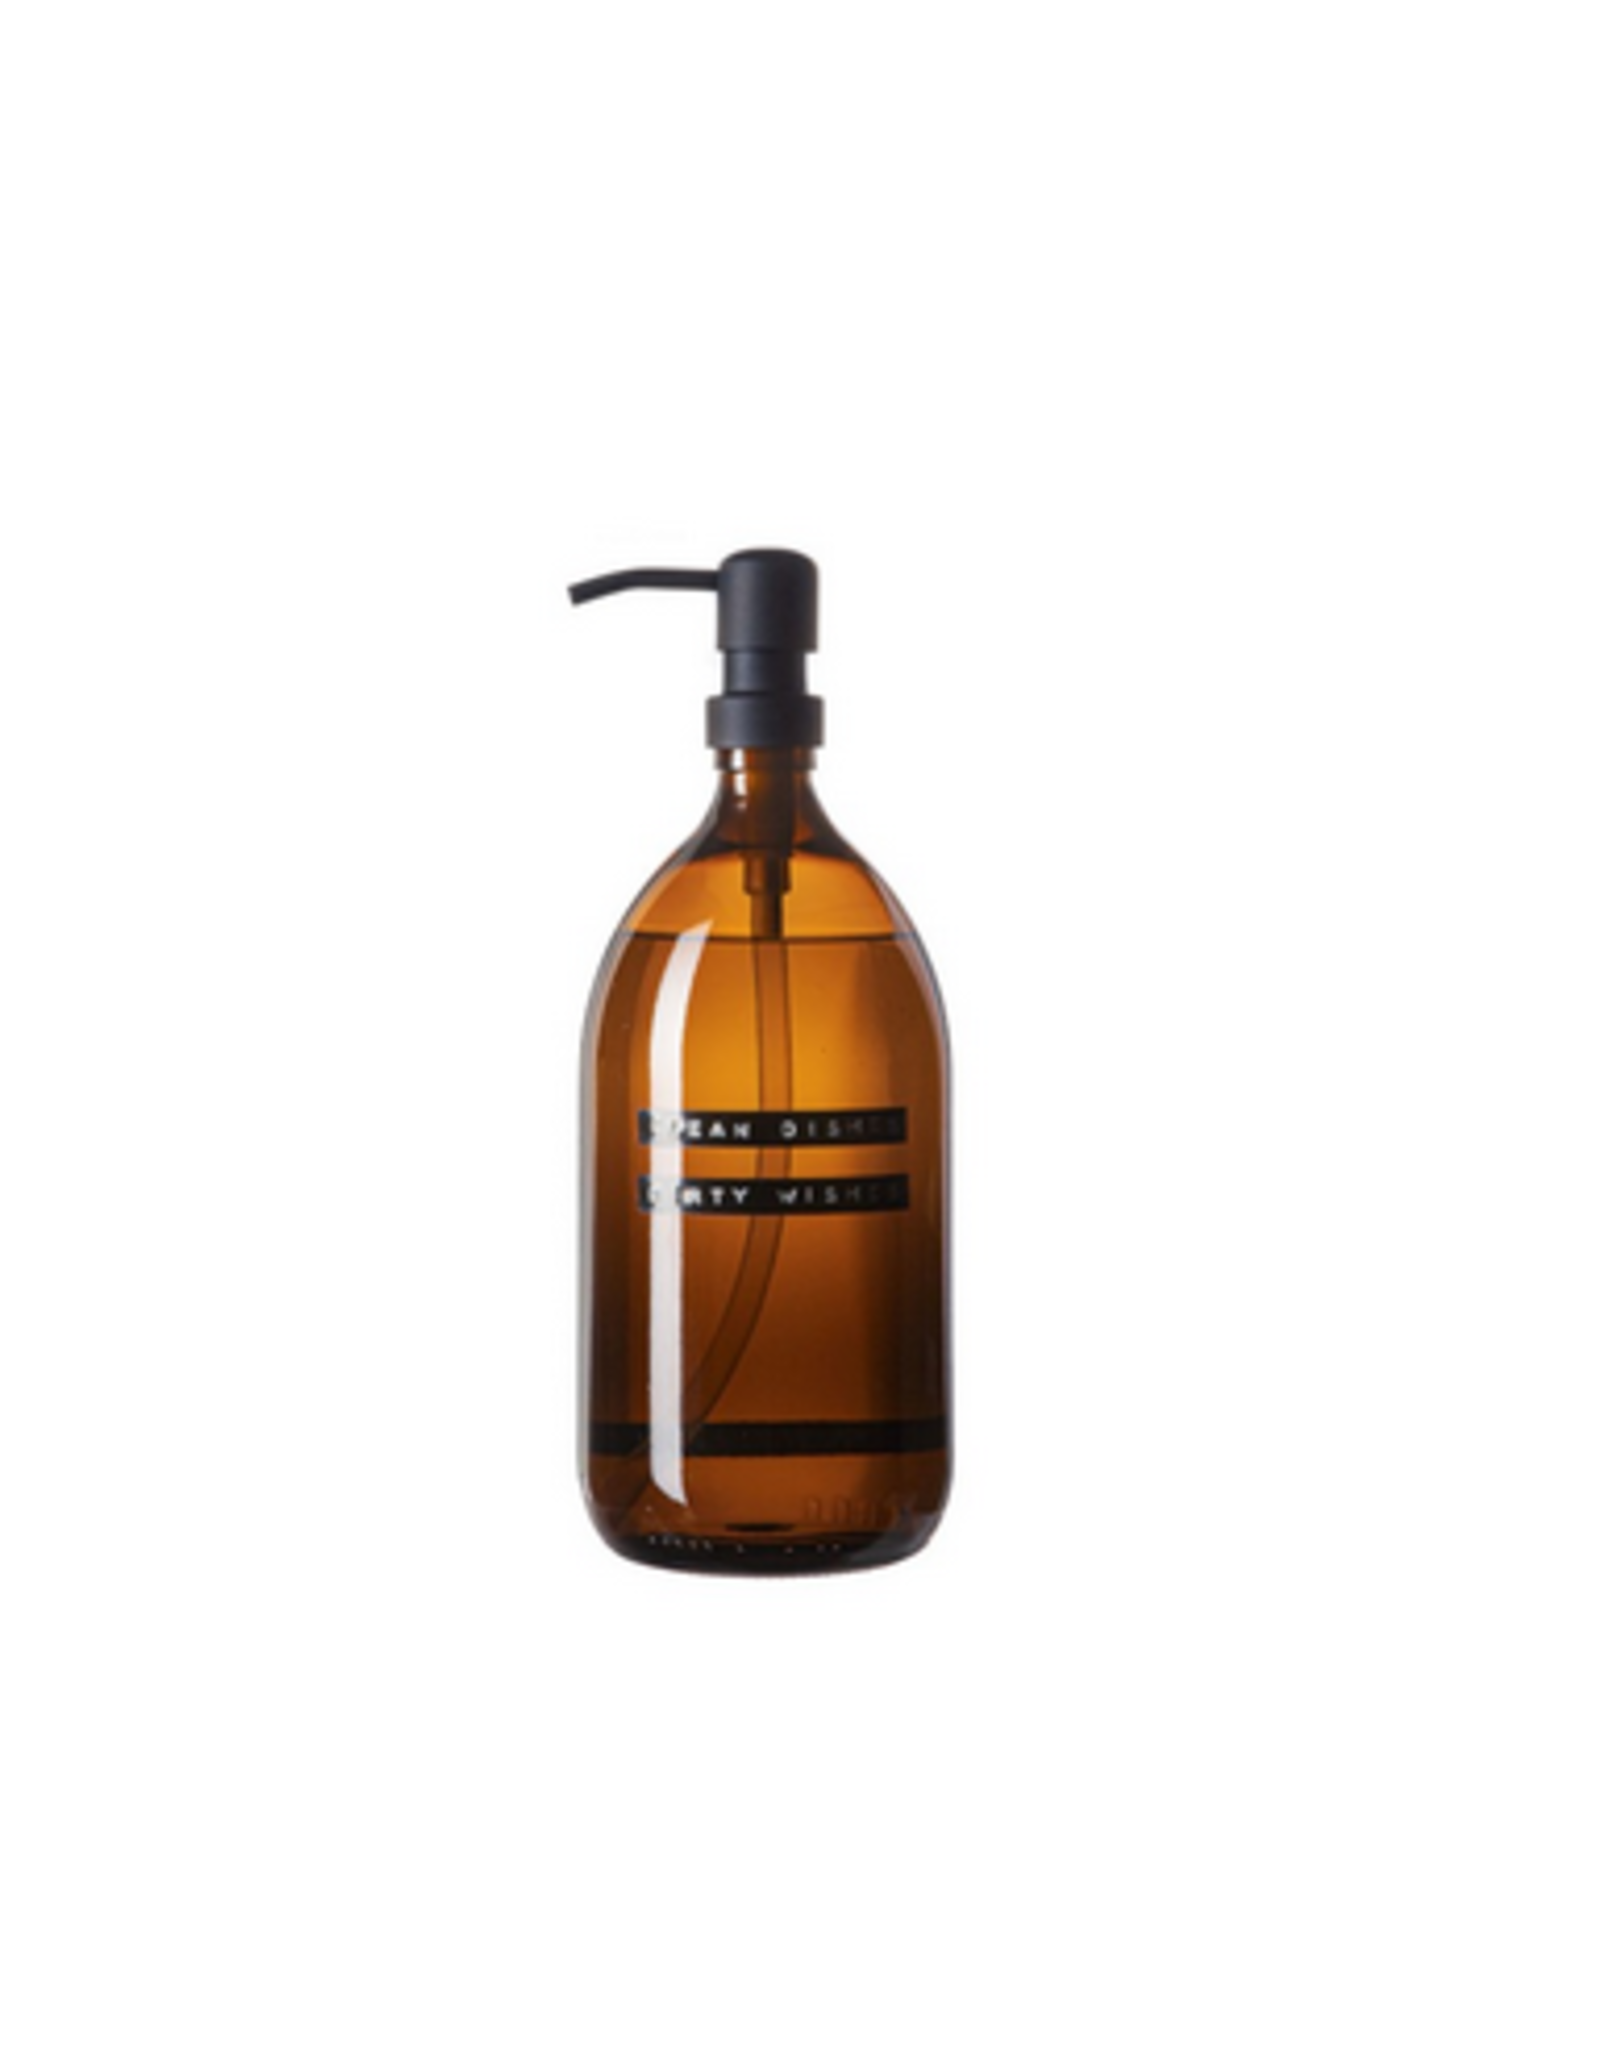 Wellmark Afwasmiddel 1L - Messing bruin glas - clean dishes dirty wishes